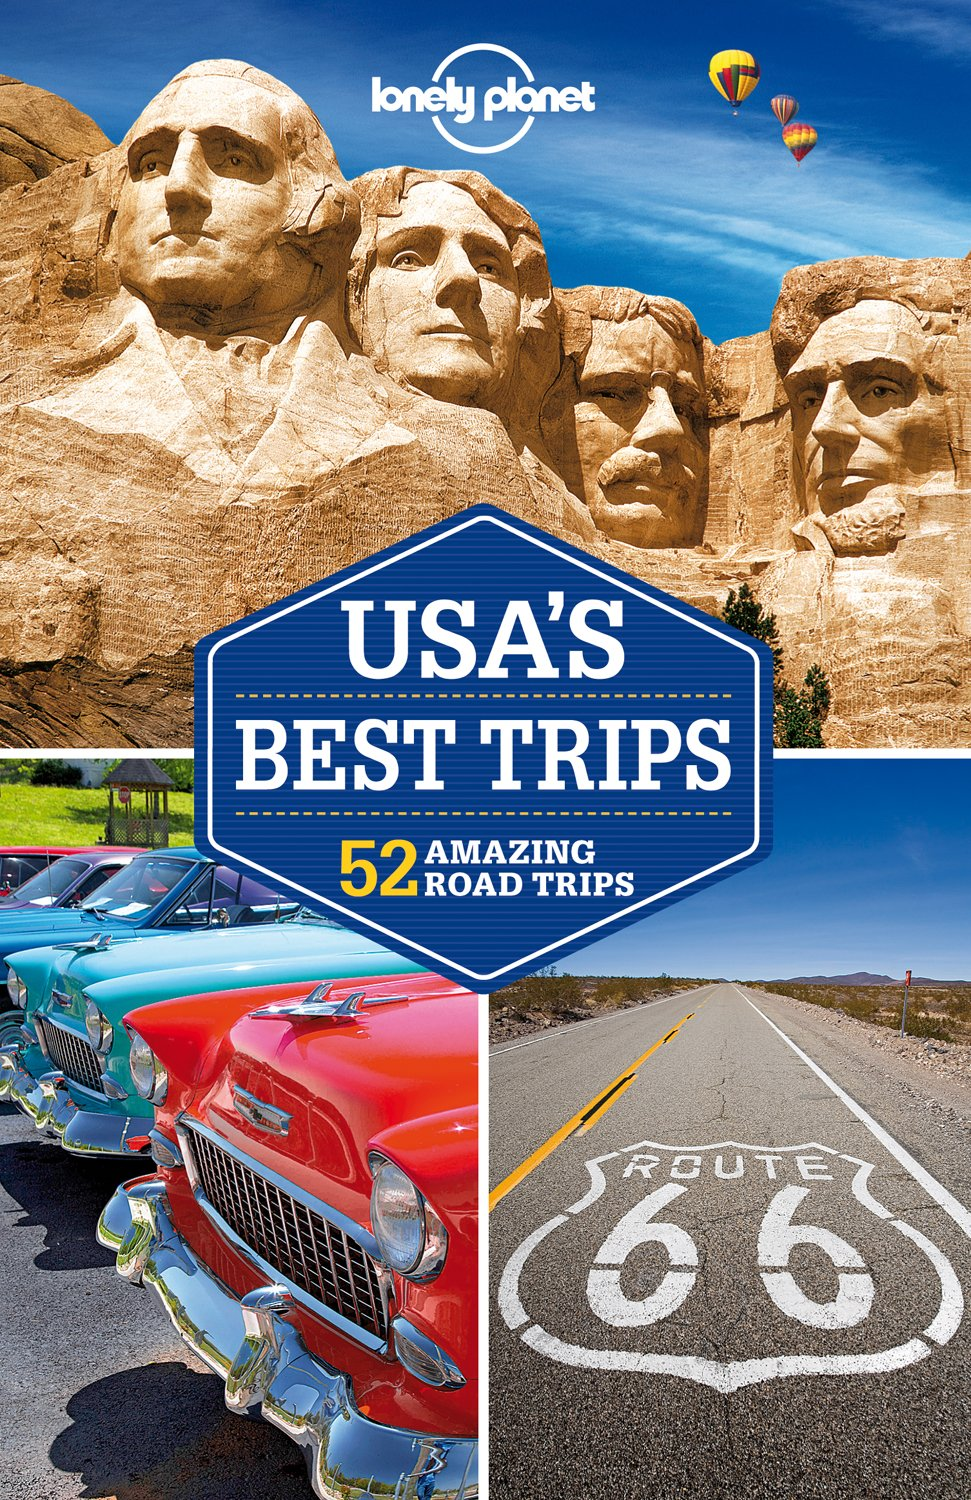 lonely planet usas best trips travel guide lonely planet sara benson greg benchwick michael grosberg mariella krause carolyn mccarthy